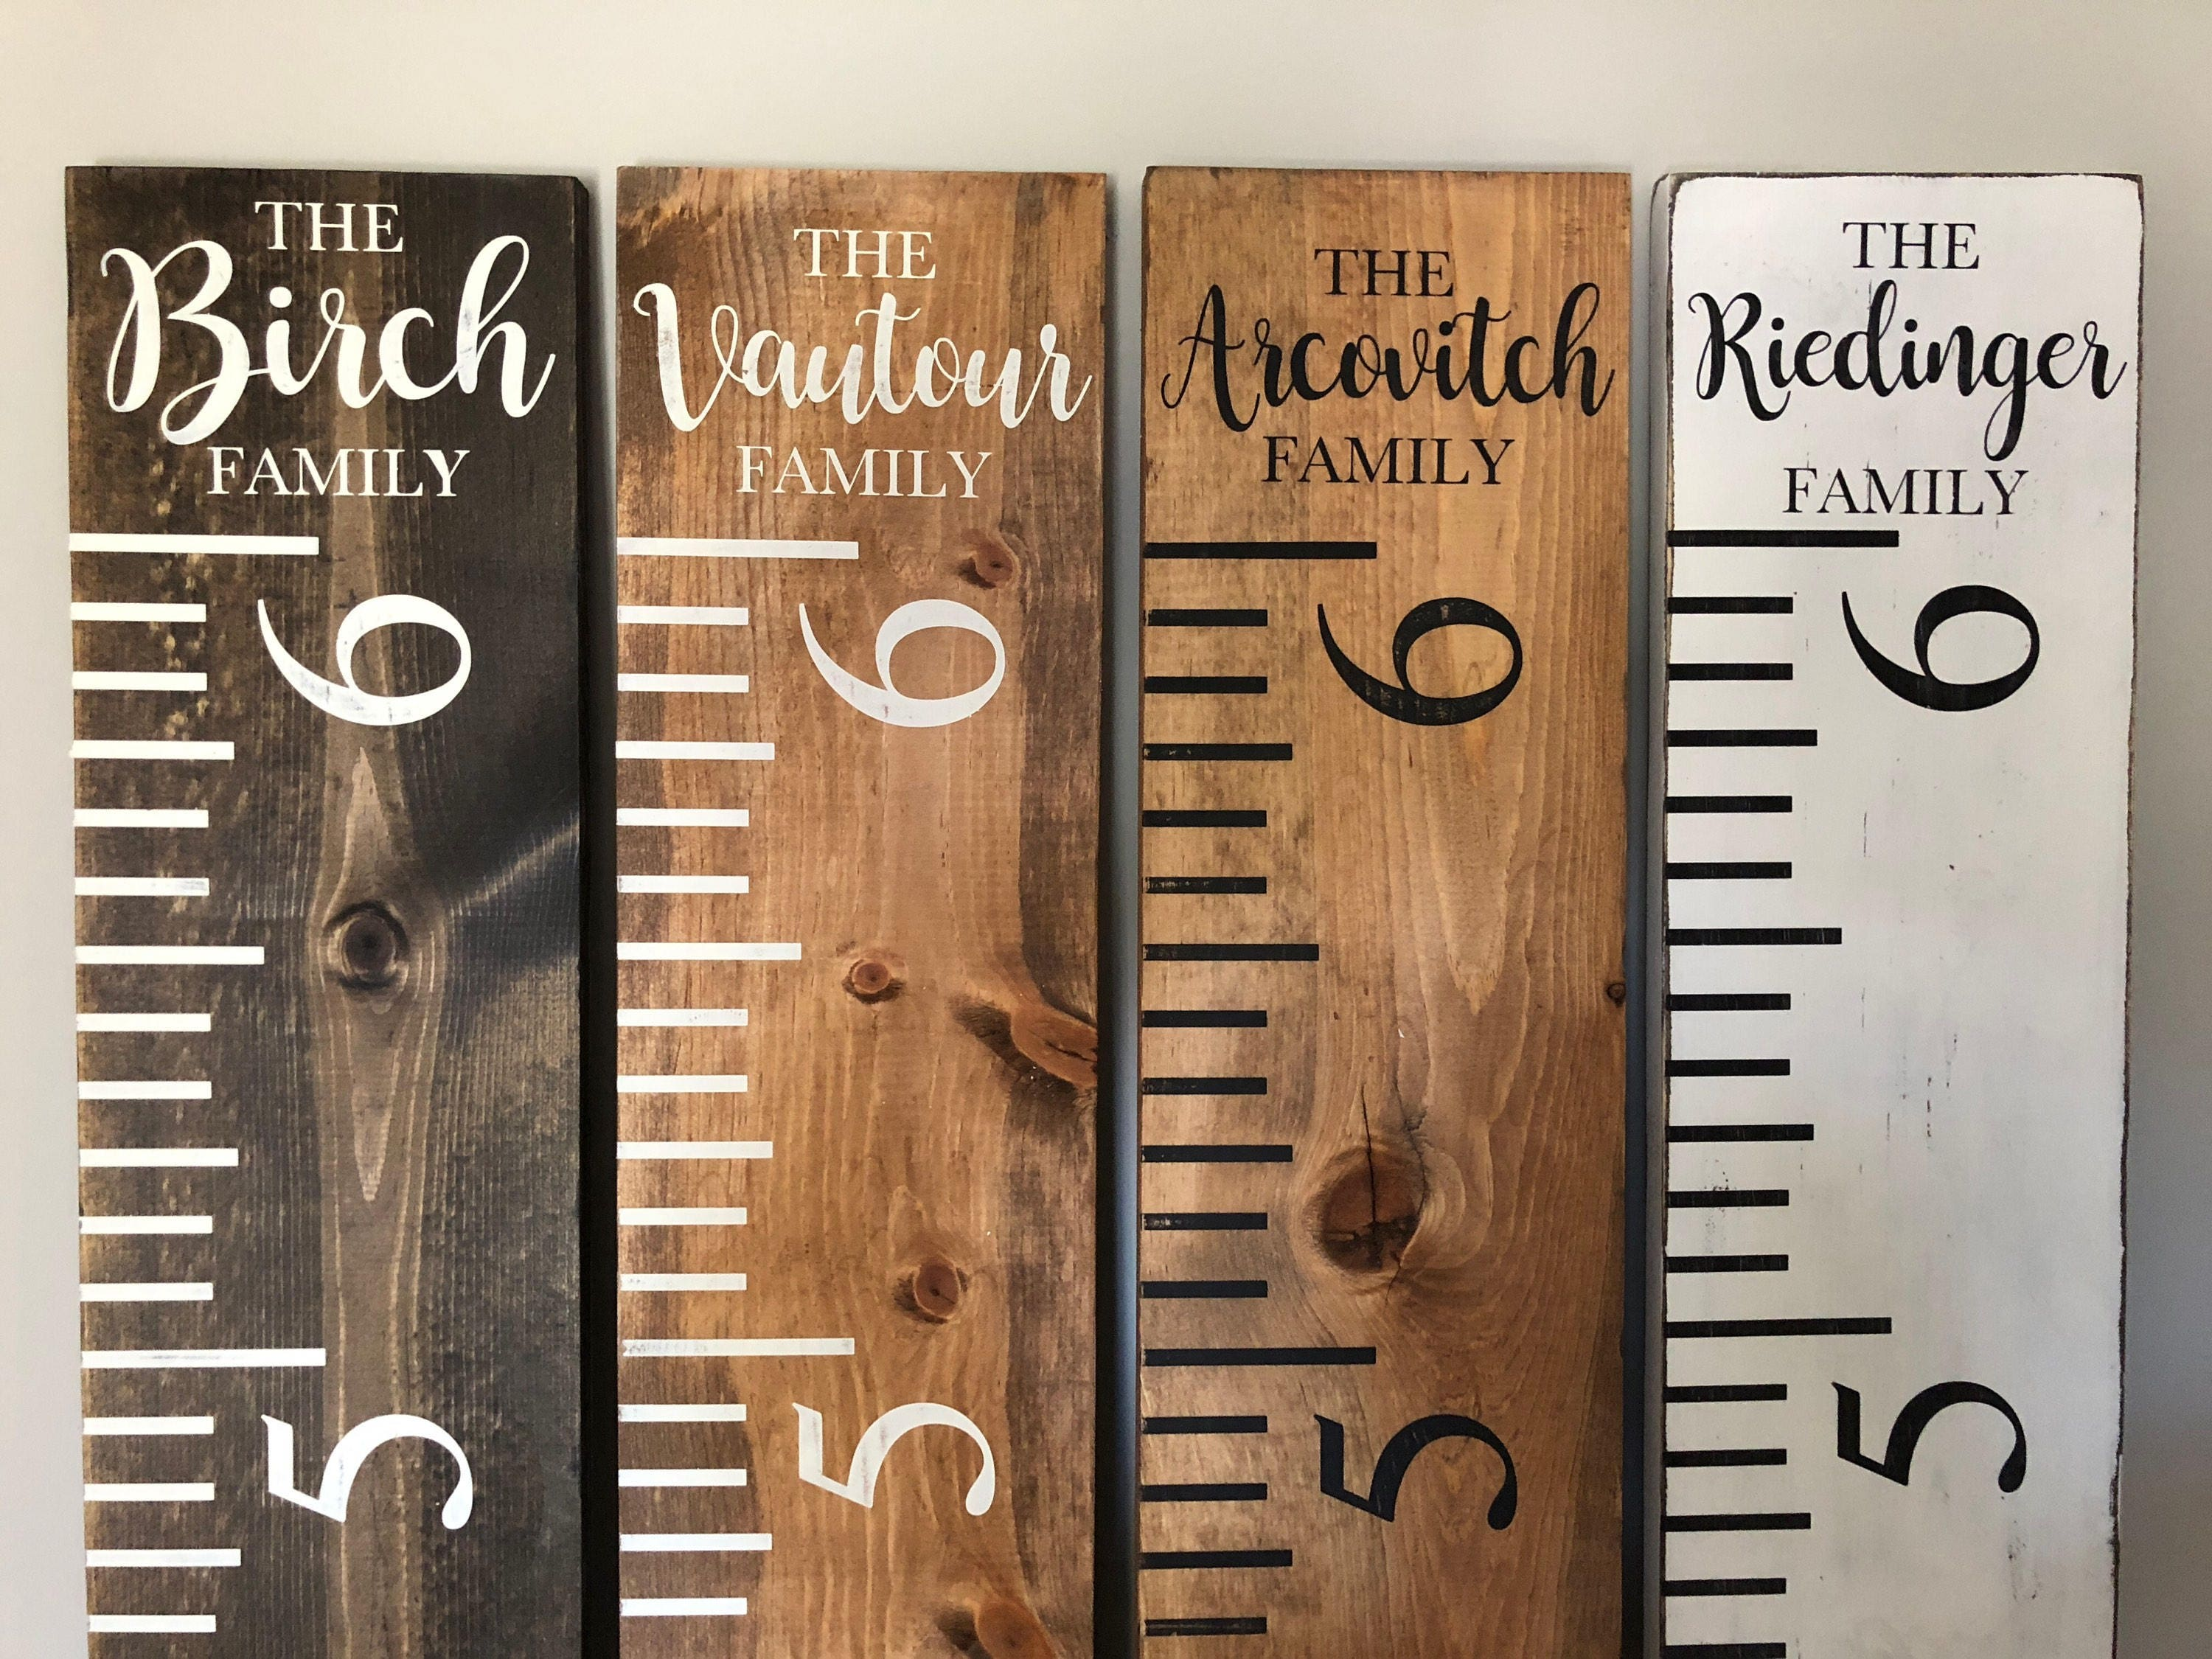 Personalized growth chart boys images free any chart examples kids growth chart personalized choice image free any chart examples personalized child growth chart choice image nvjuhfo Choice Image